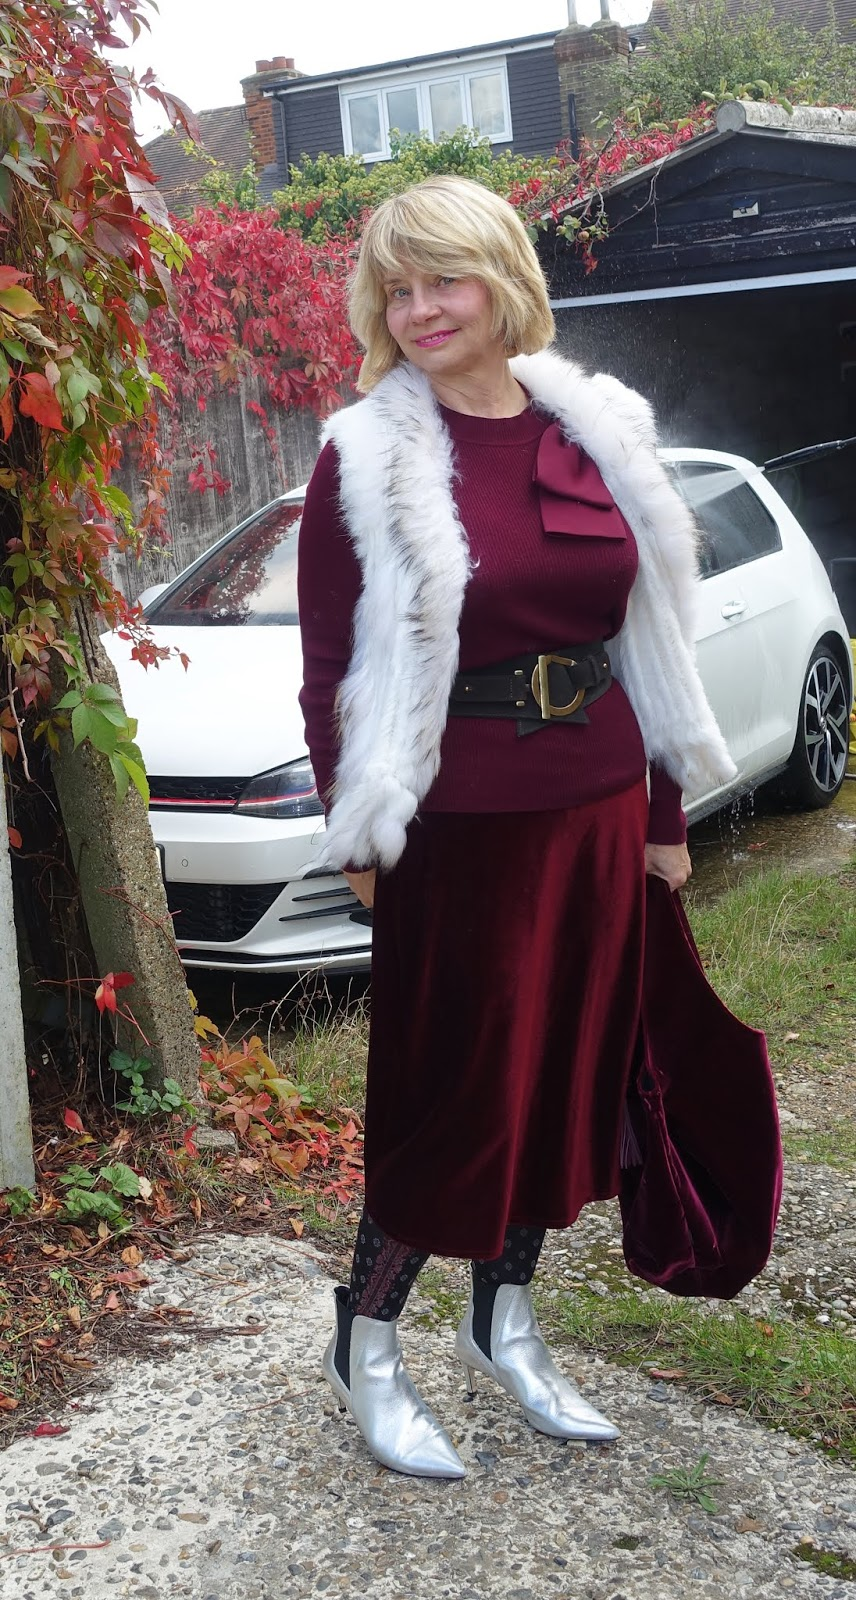 Framed by a Virginia creeper Is This Mutton blogger Gail Hanlon is wearinbg a monochrome burgundy outfit with a white fur gilet and patterned tights